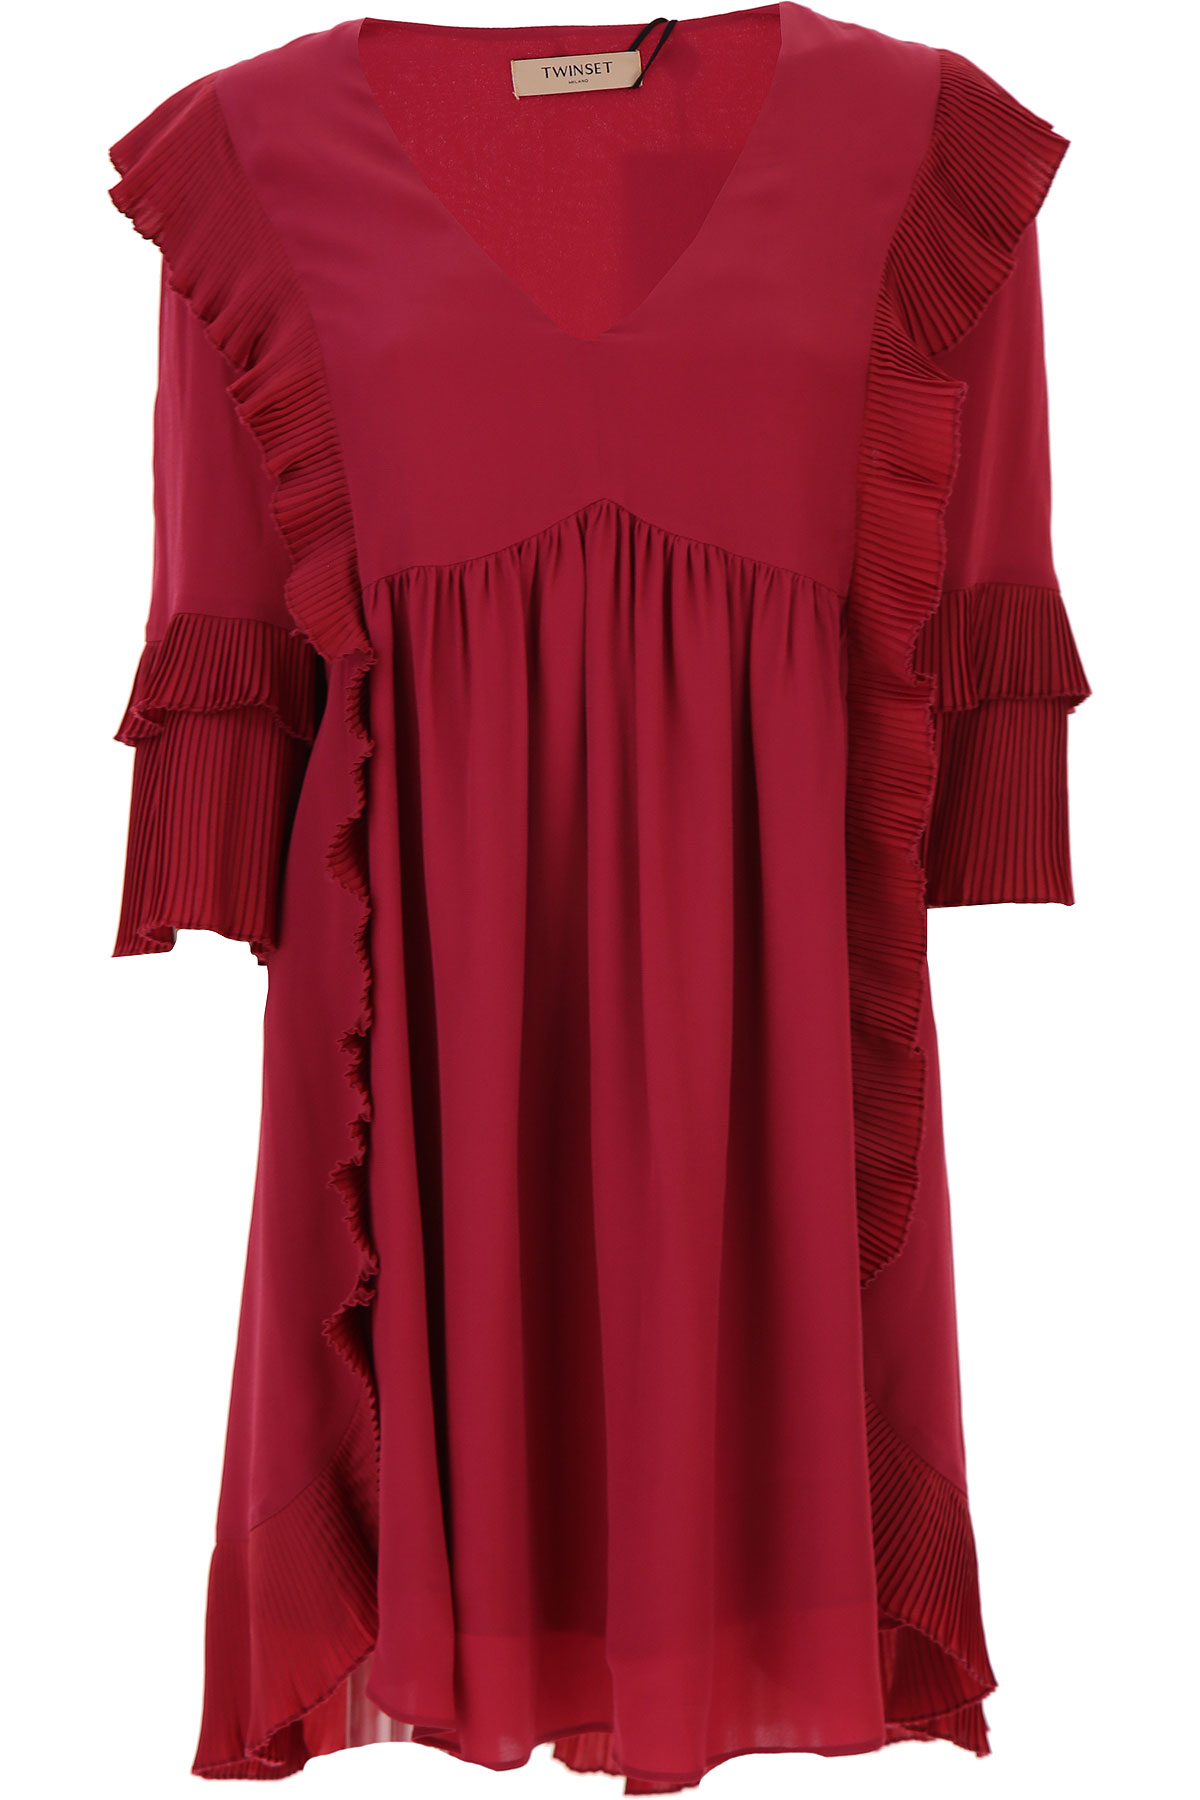 Twin Set by Simona Barbieri Dress for Women, Evening Cocktail Party On Sale, Beet Red, viscosa, 2019, 4 6 8